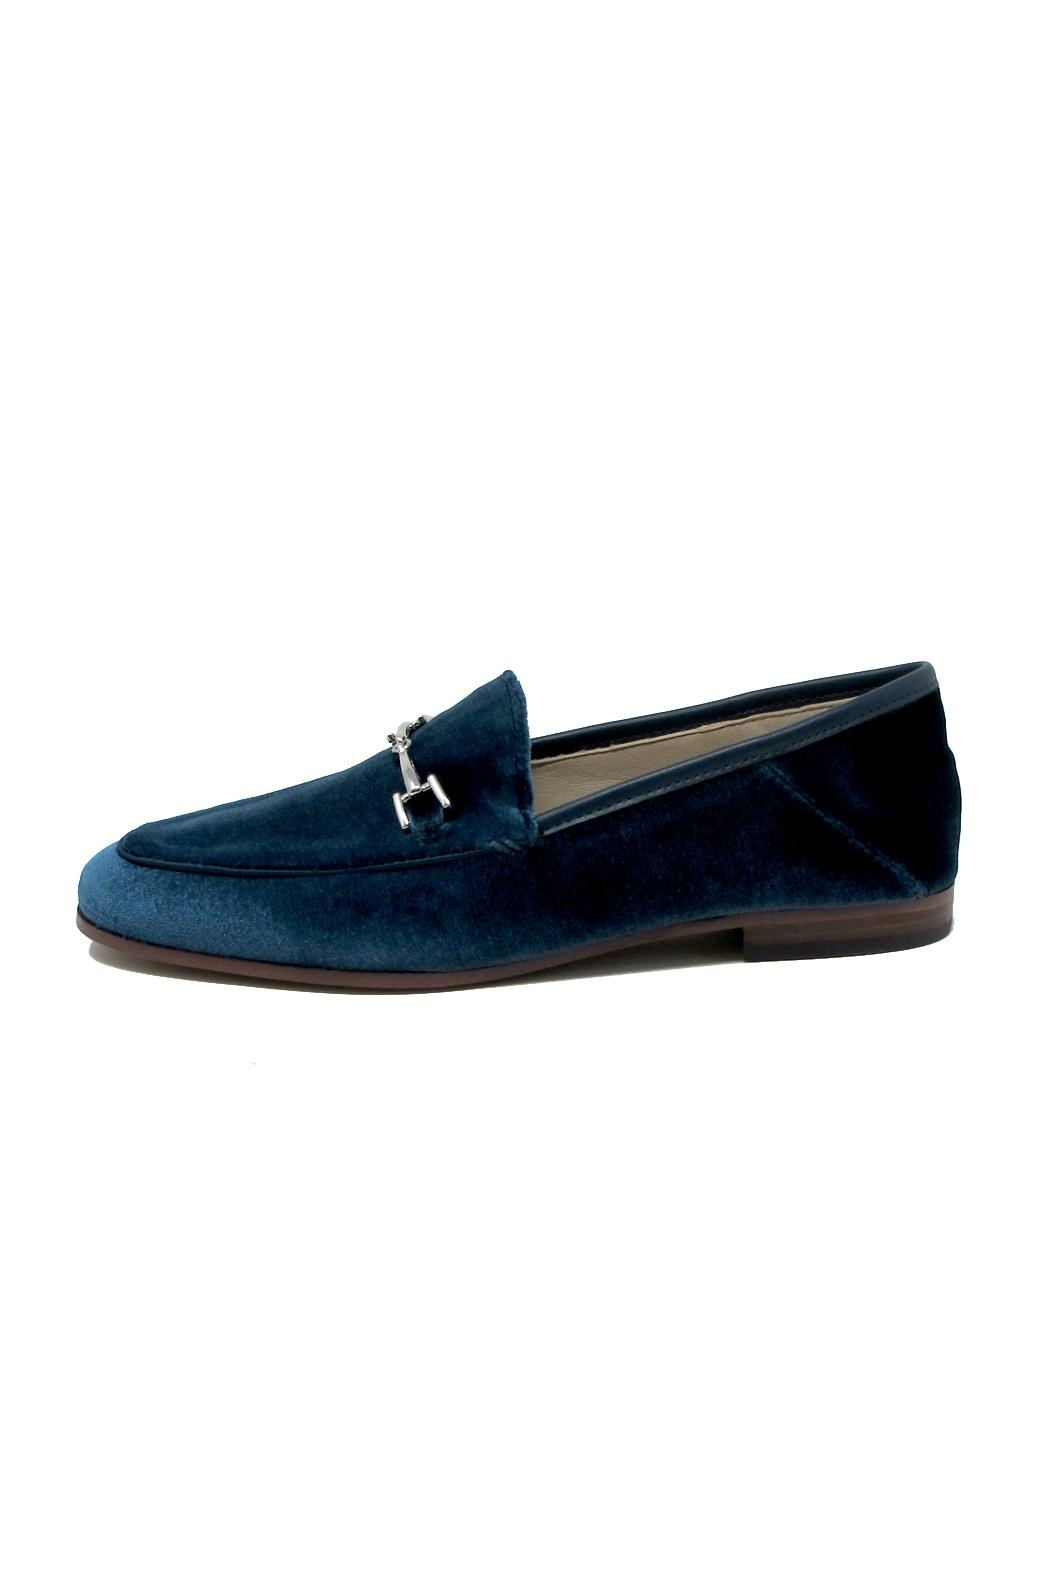 Sam Edelman Blue Velvet Loafers - Main Image